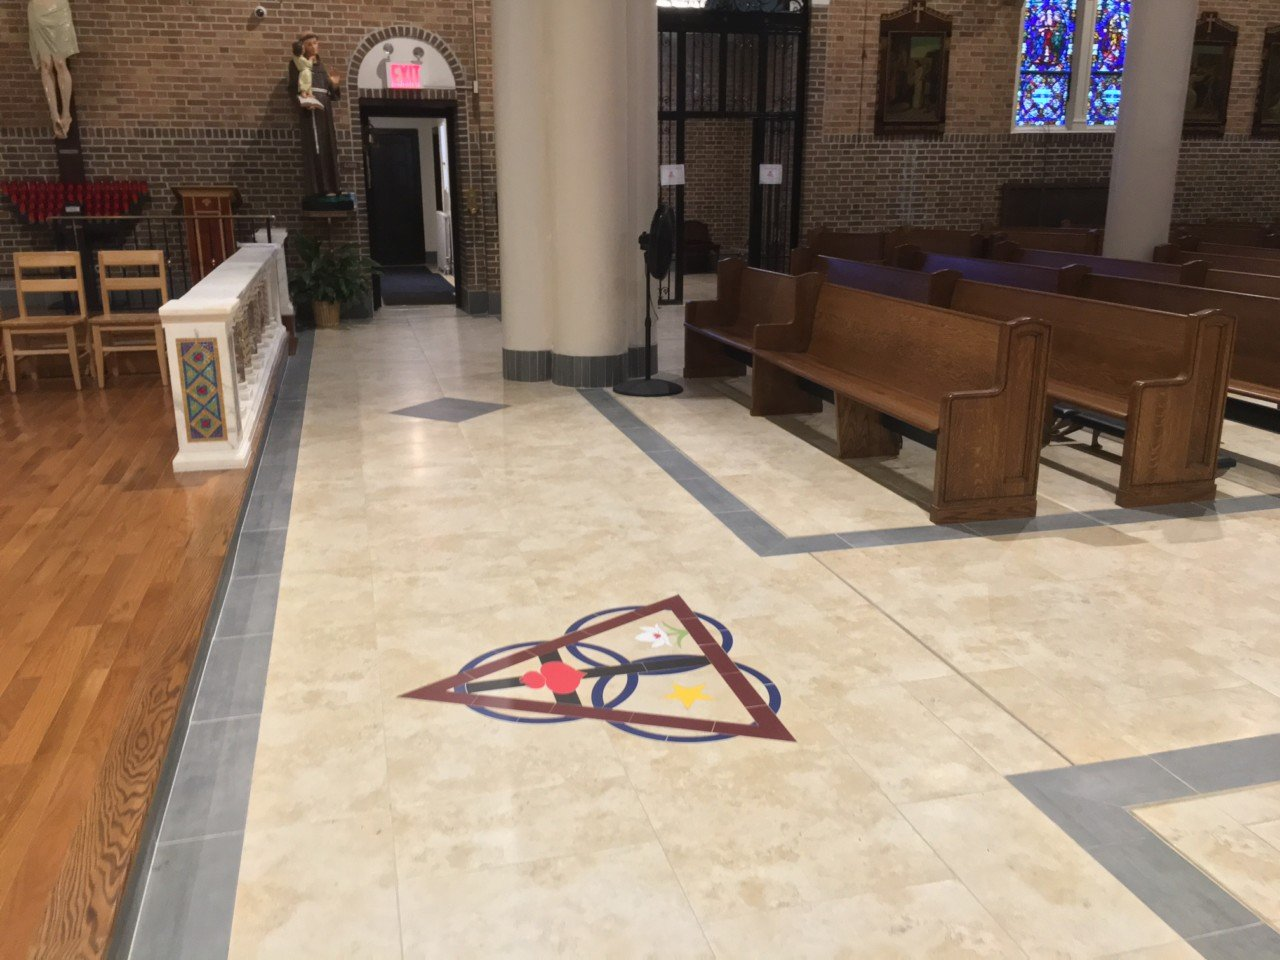 Church tile marble floors artech church interiors for churches with cost or weight issues floor cannot support the weight of stone we also offer a premium vinyl tile that looks like stone dailygadgetfo Image collections